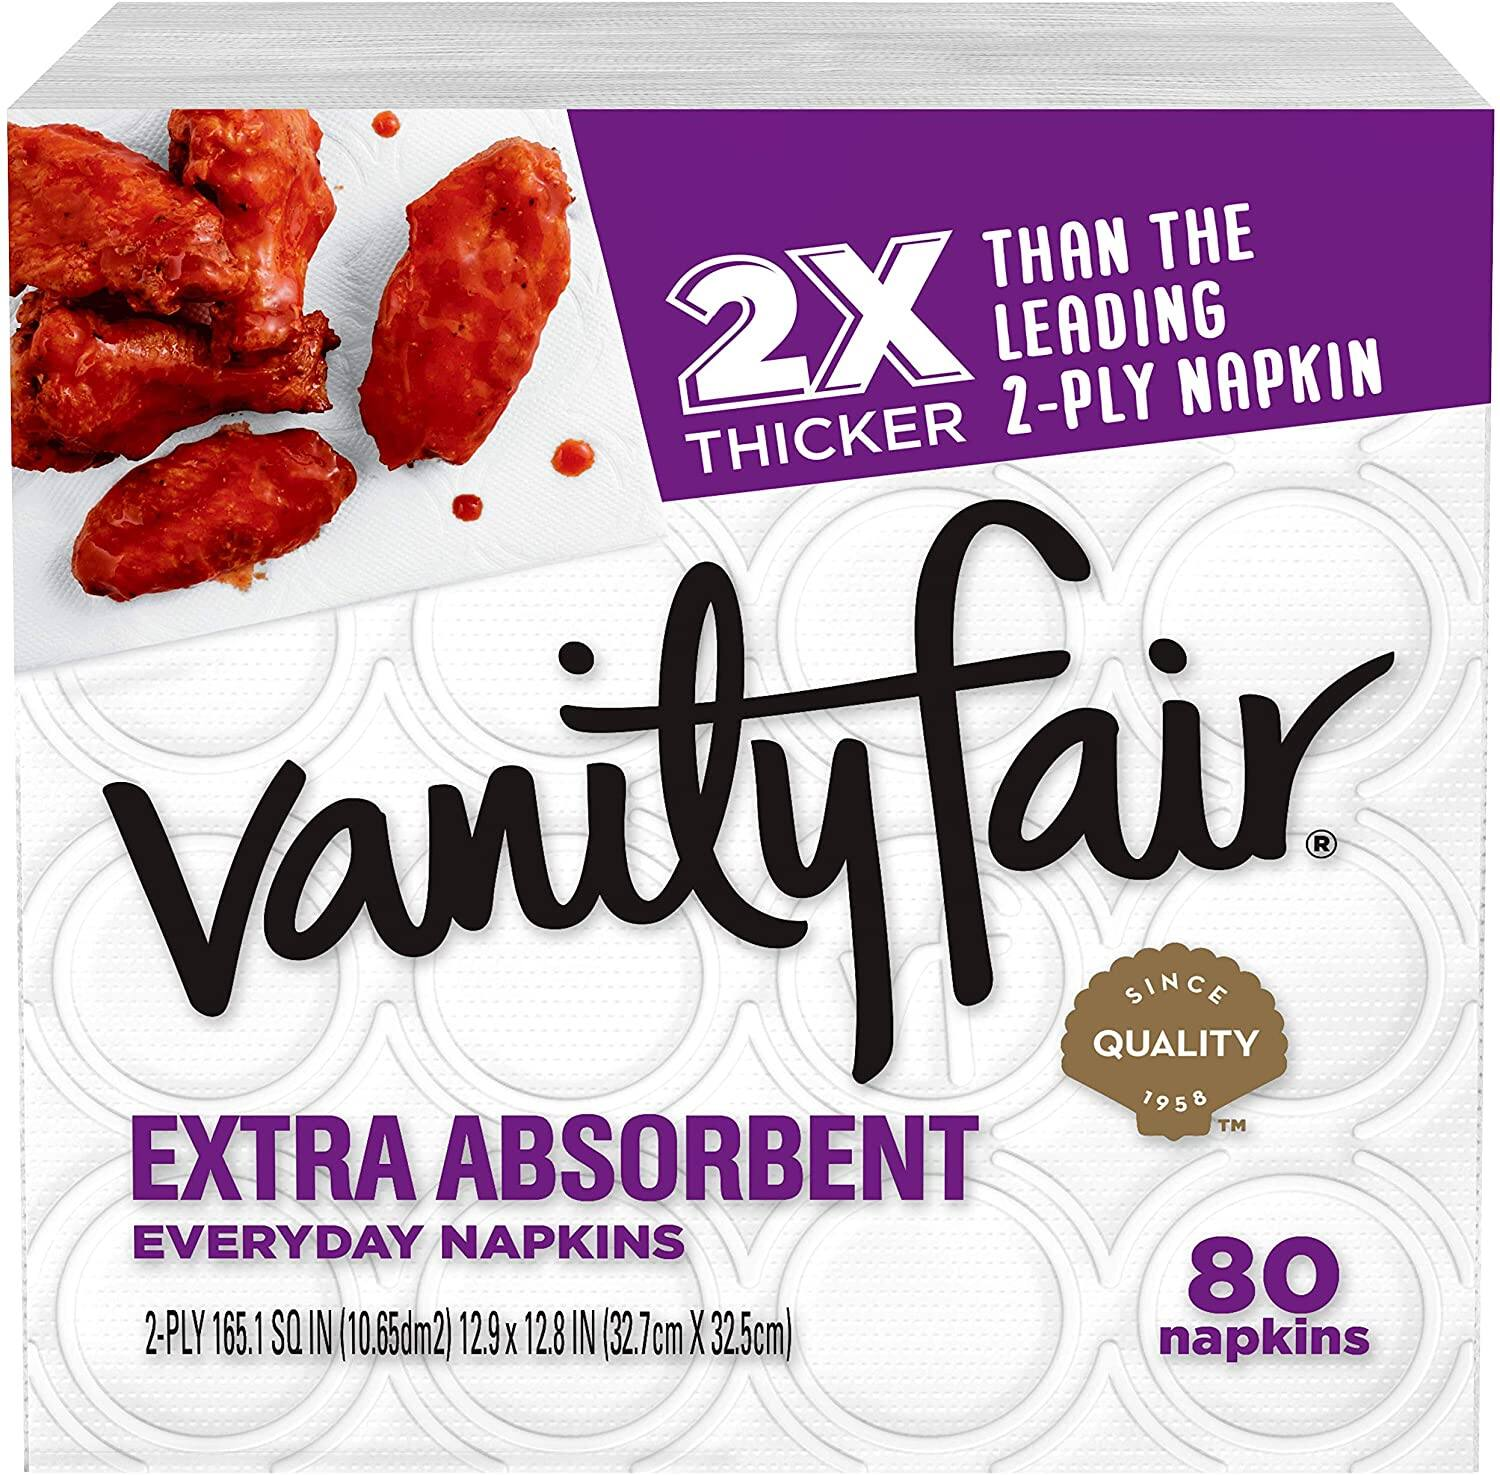 Vanity Fair Everyday Extra Absorbent Premium Paper Napkin, 80 Count $1.98 FS w/ Prime